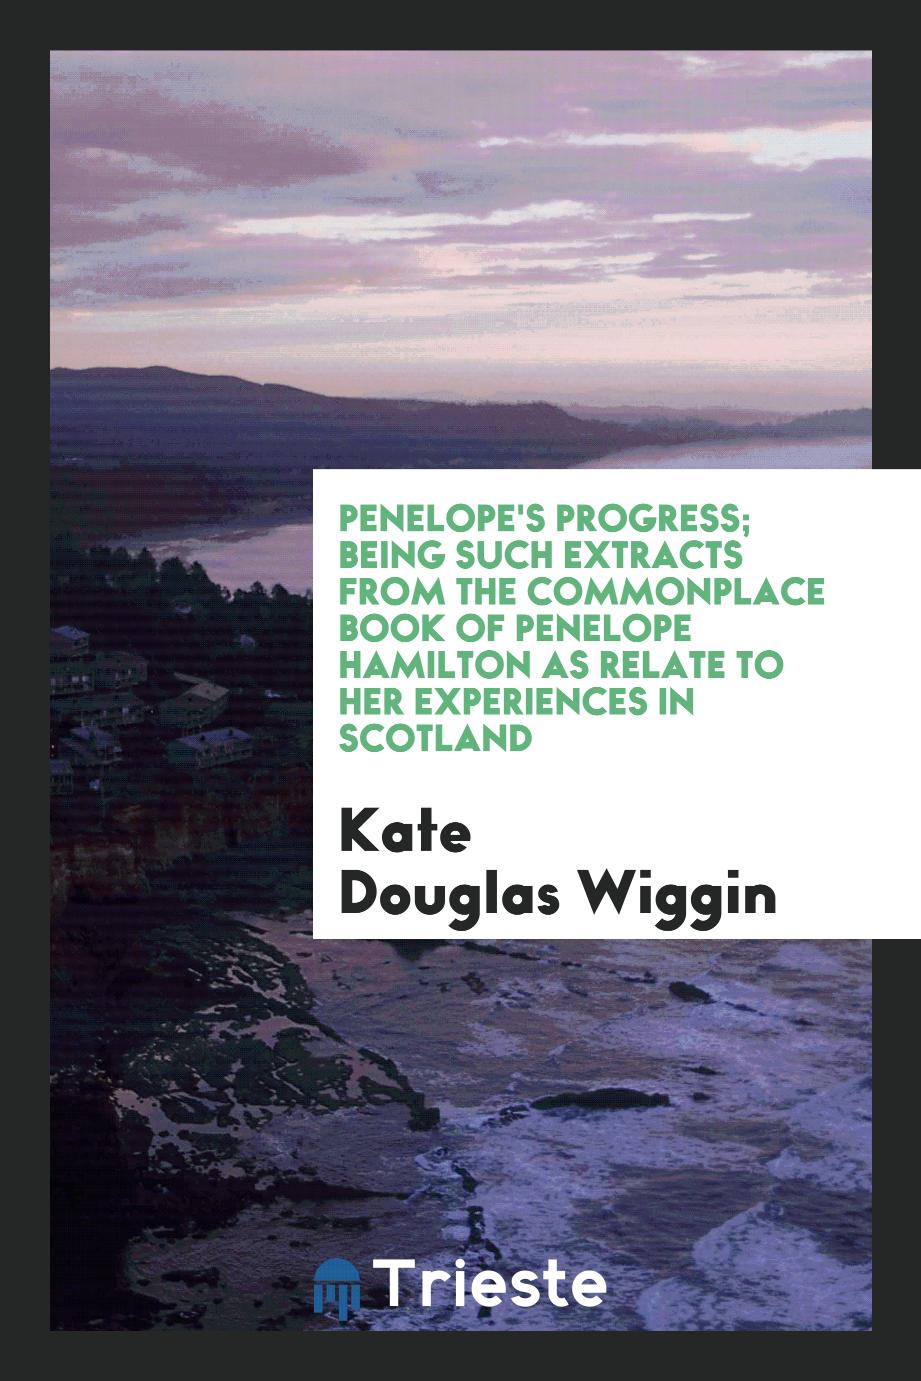 Penelope's progress; being such extracts from the commonplace book of Penelope Hamilton as relate to her experiences in Scotland